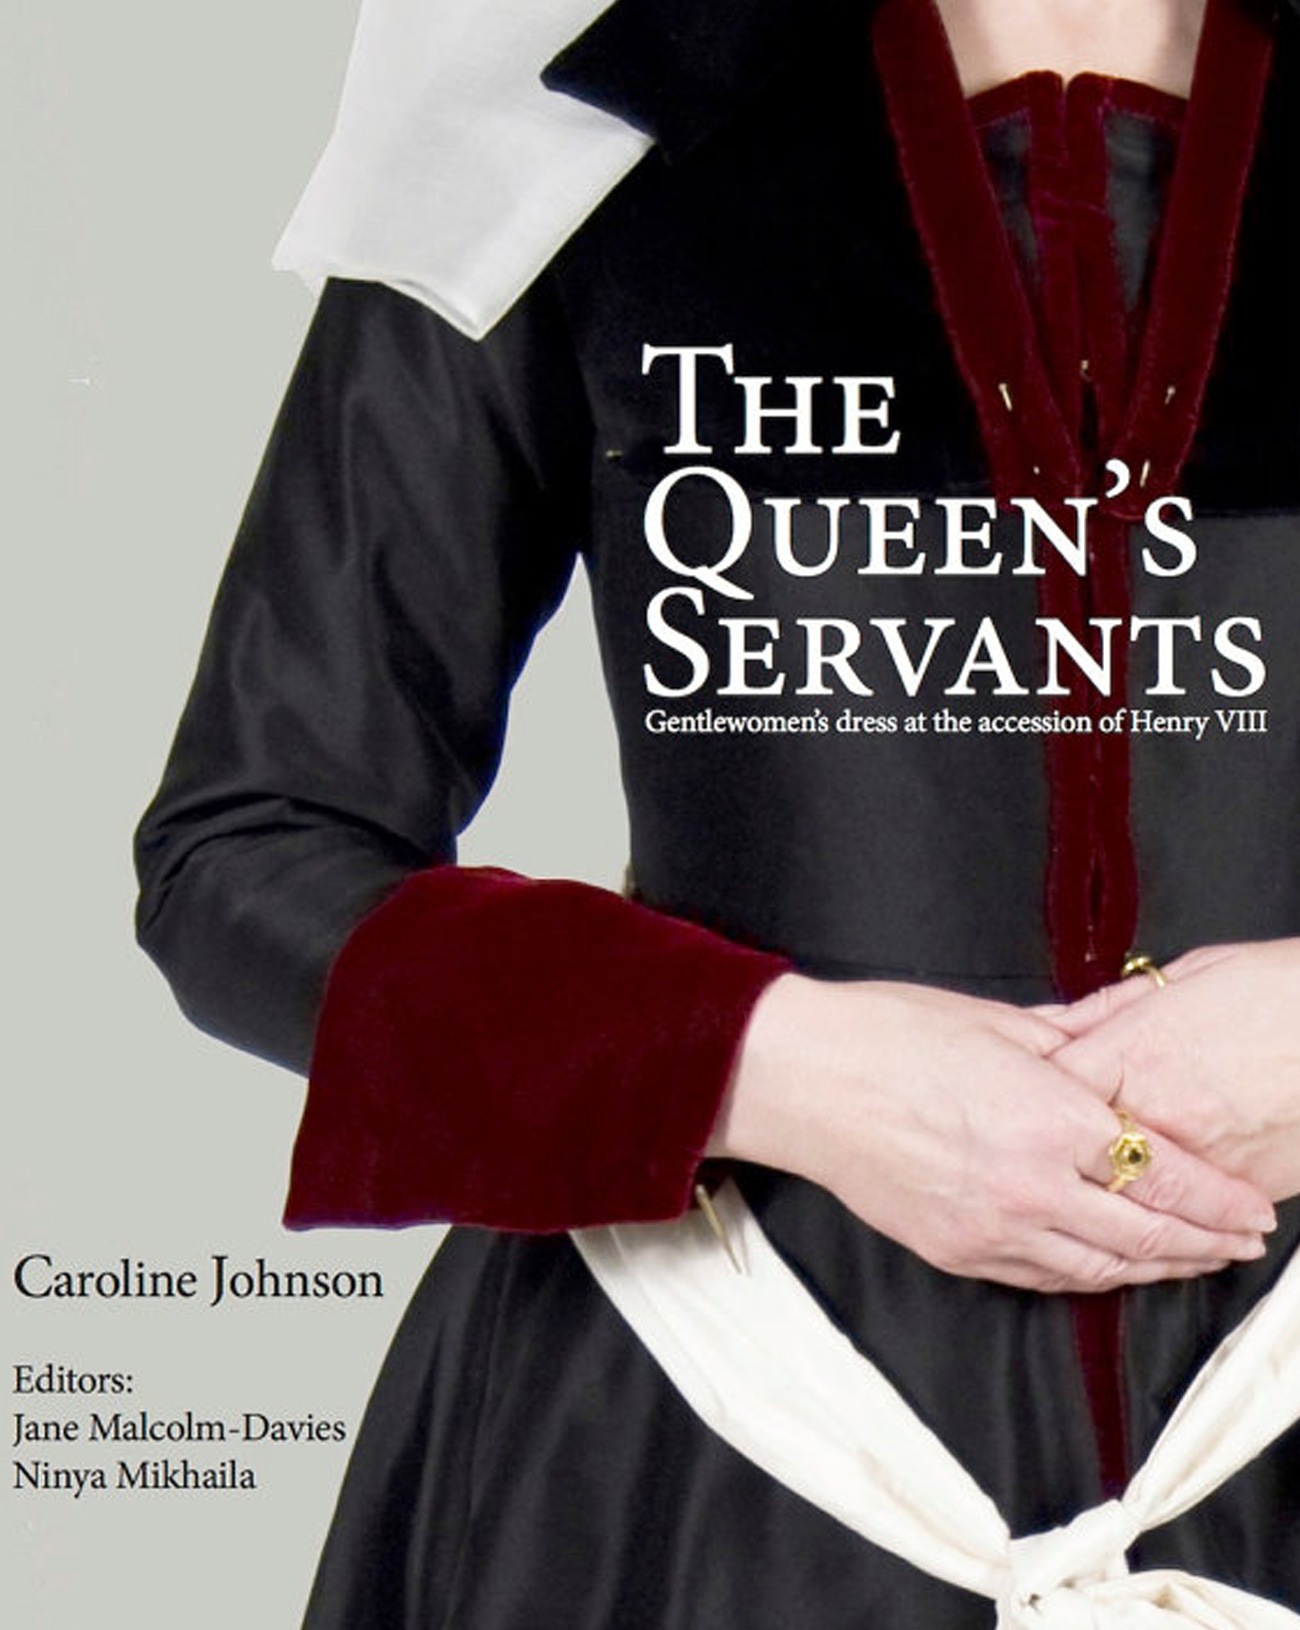 The Queen's Servants